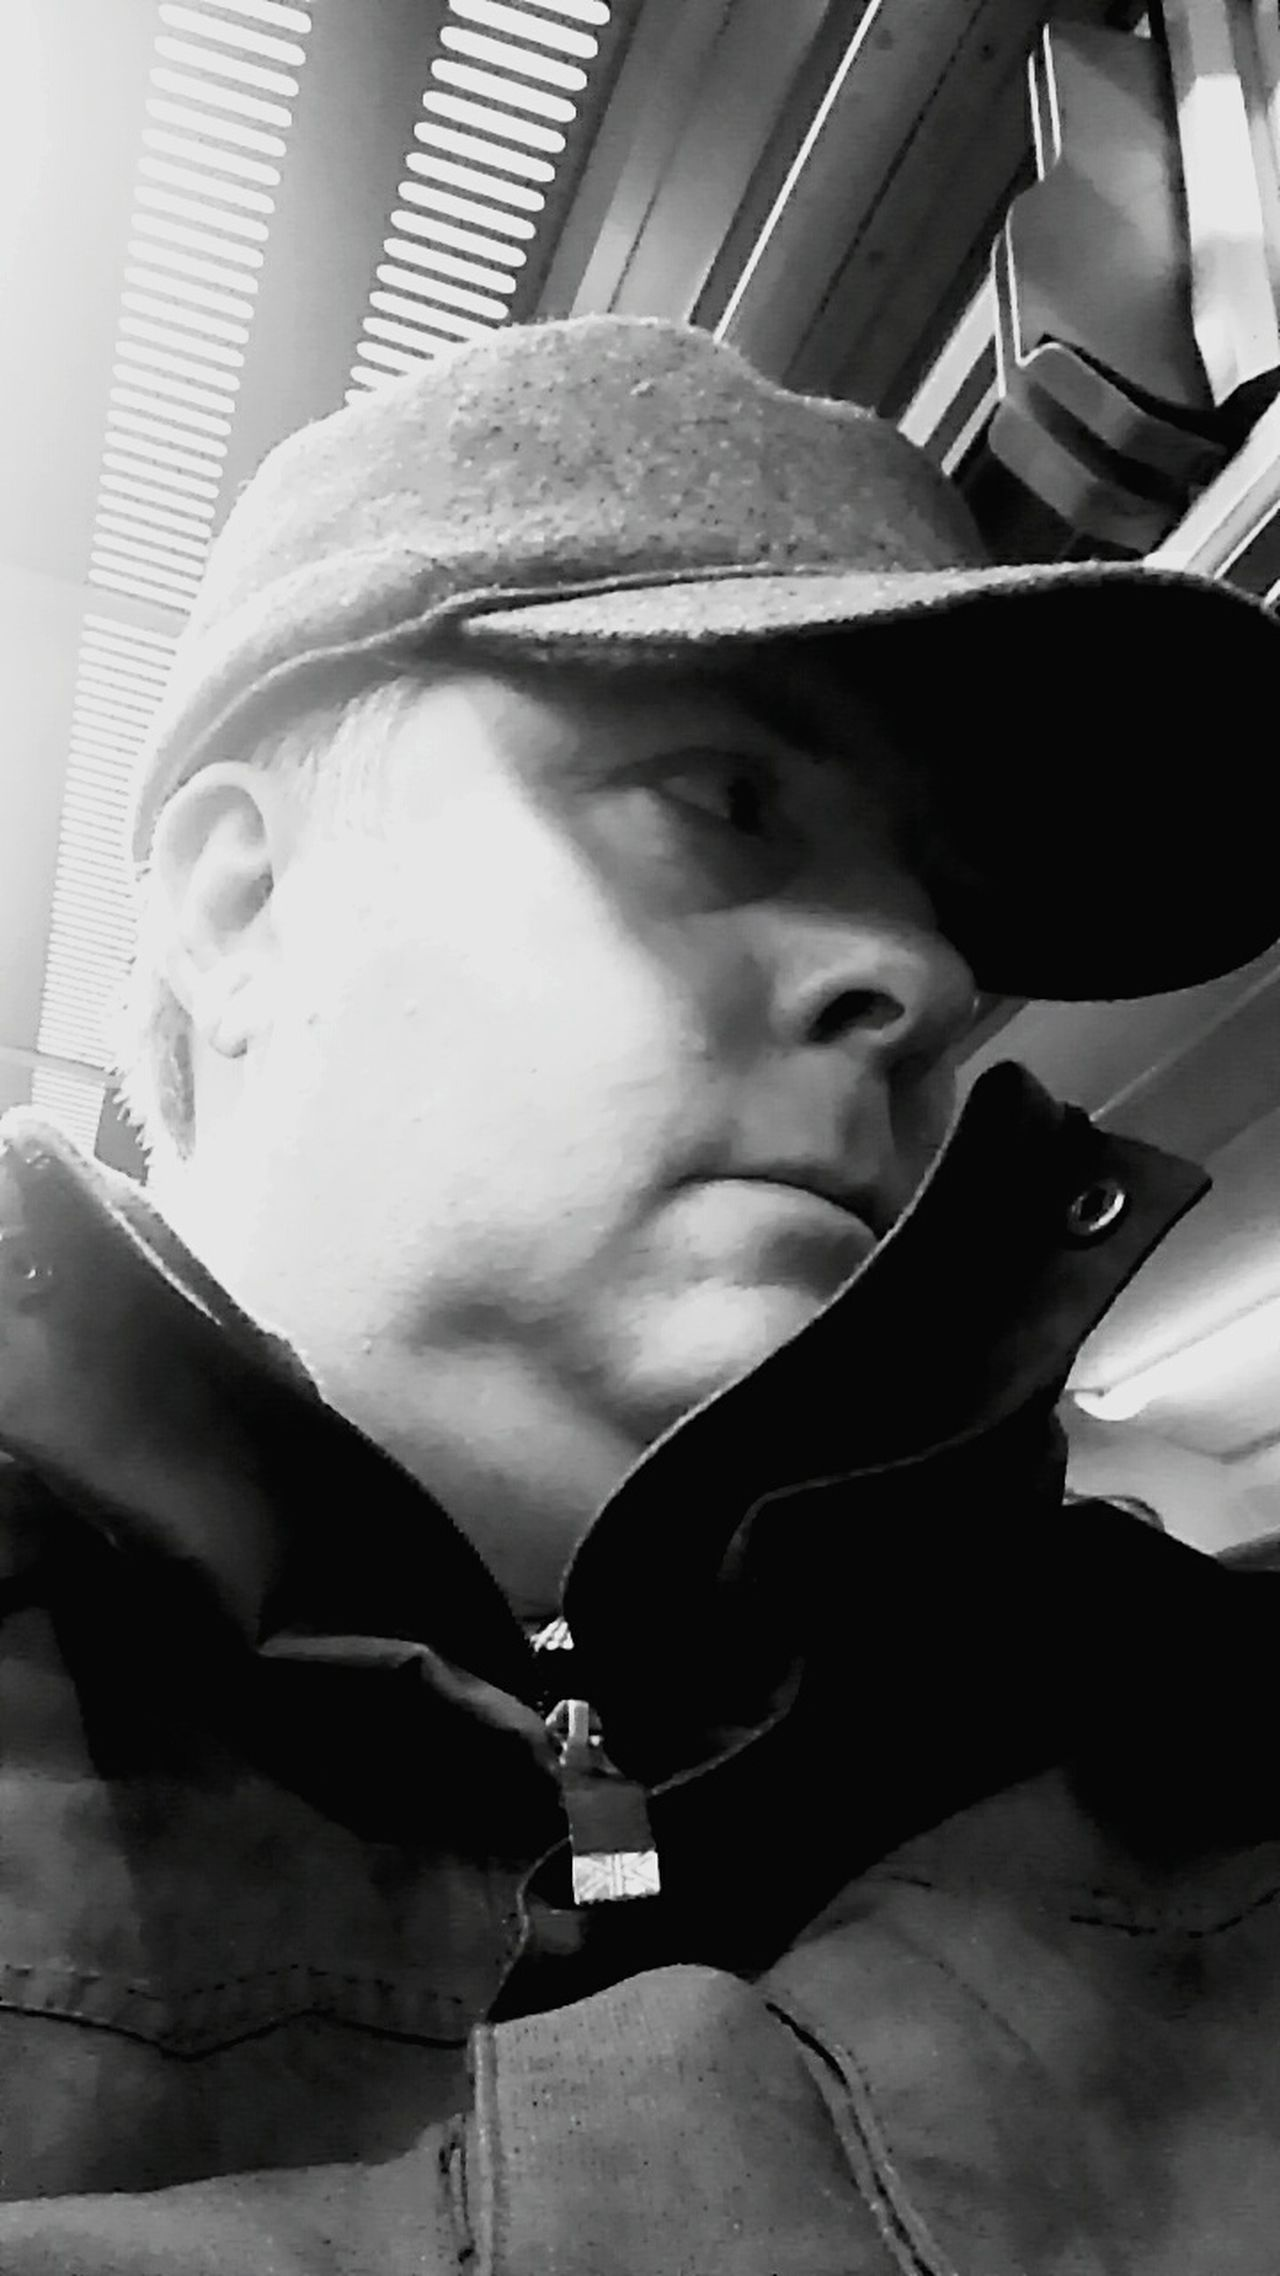 Working Day Urban Commuting Grind Tired Pensive Thinker Daydreaming Thoughtful Mindfulness Mindful